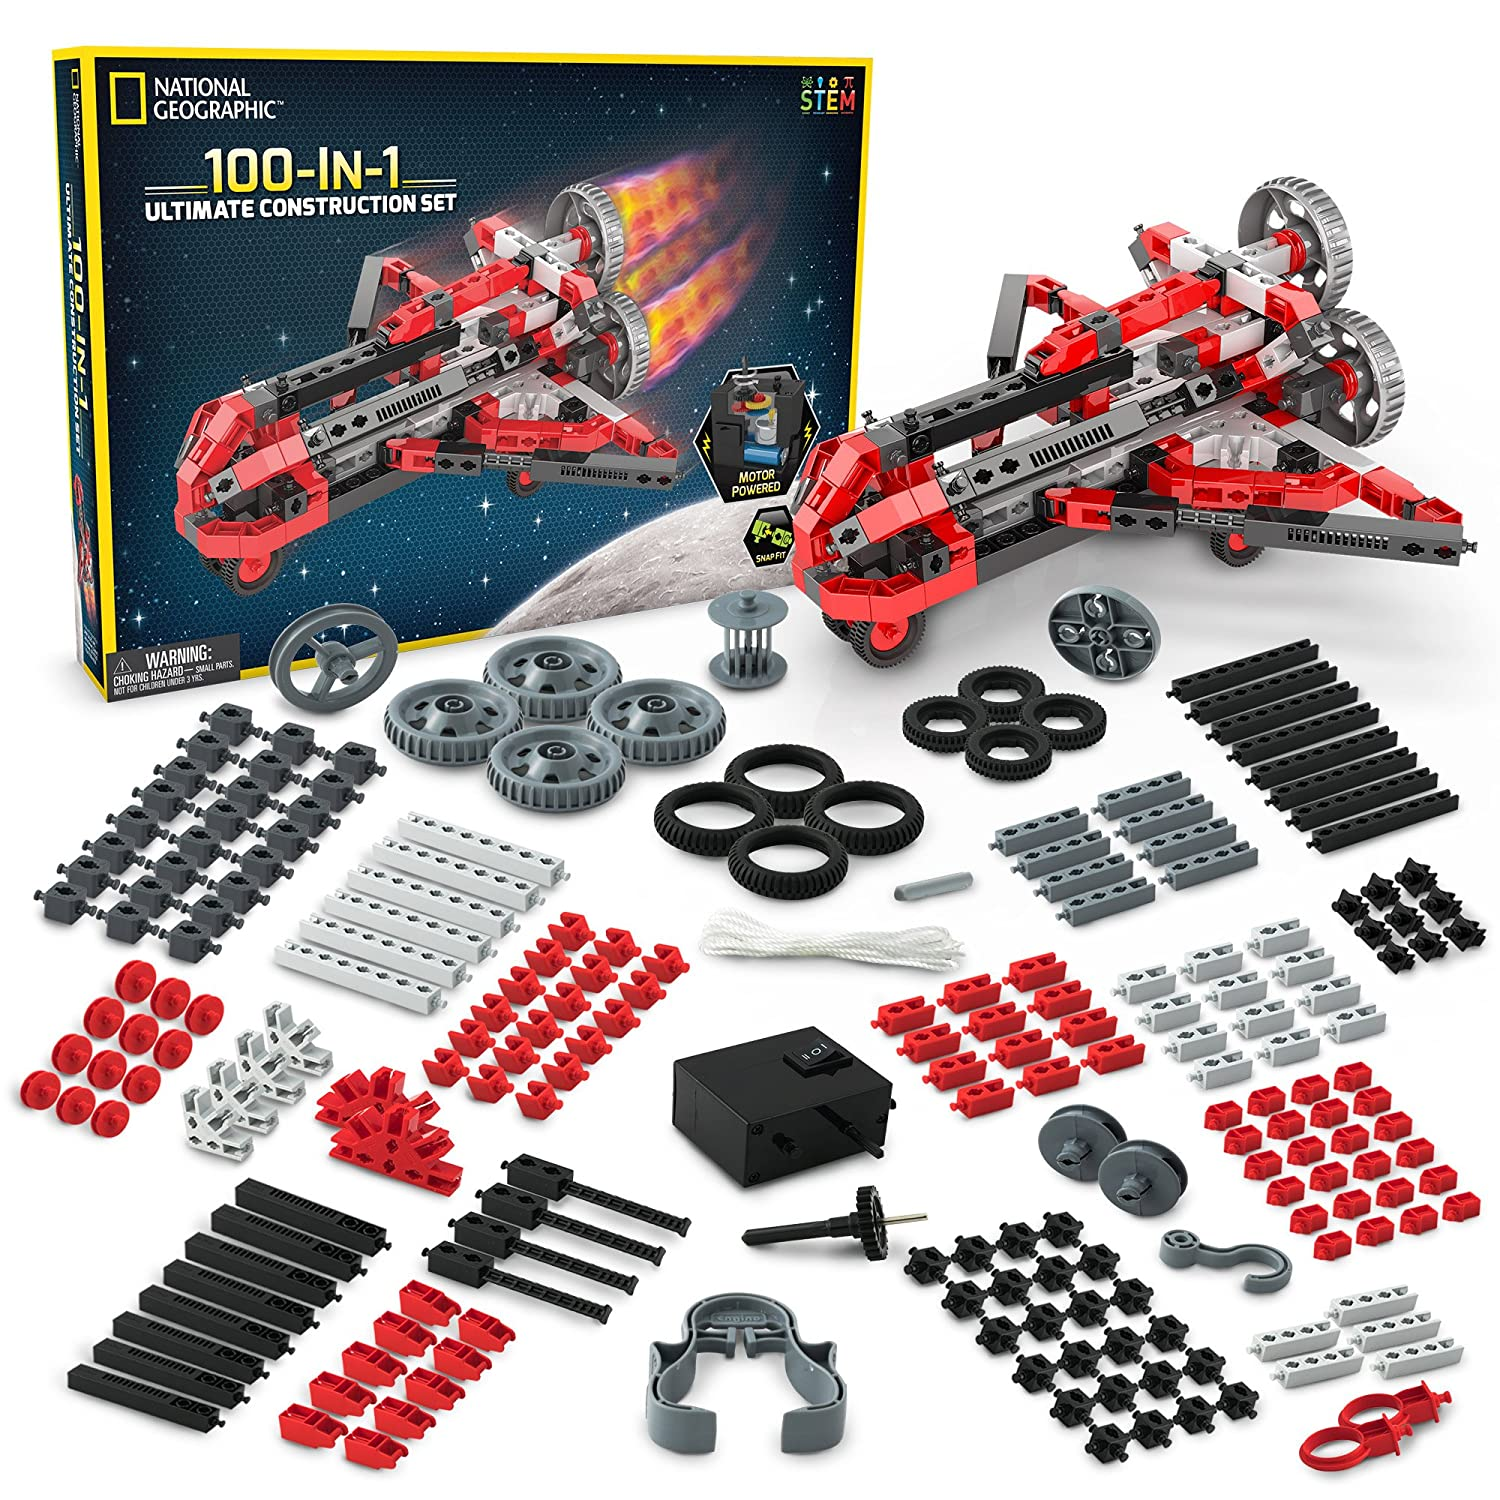 STEM Learning Animals and More Cars National Geographic Ultimate Construction Engineering Set Build 100 Unique Motorized Models: Helicopters